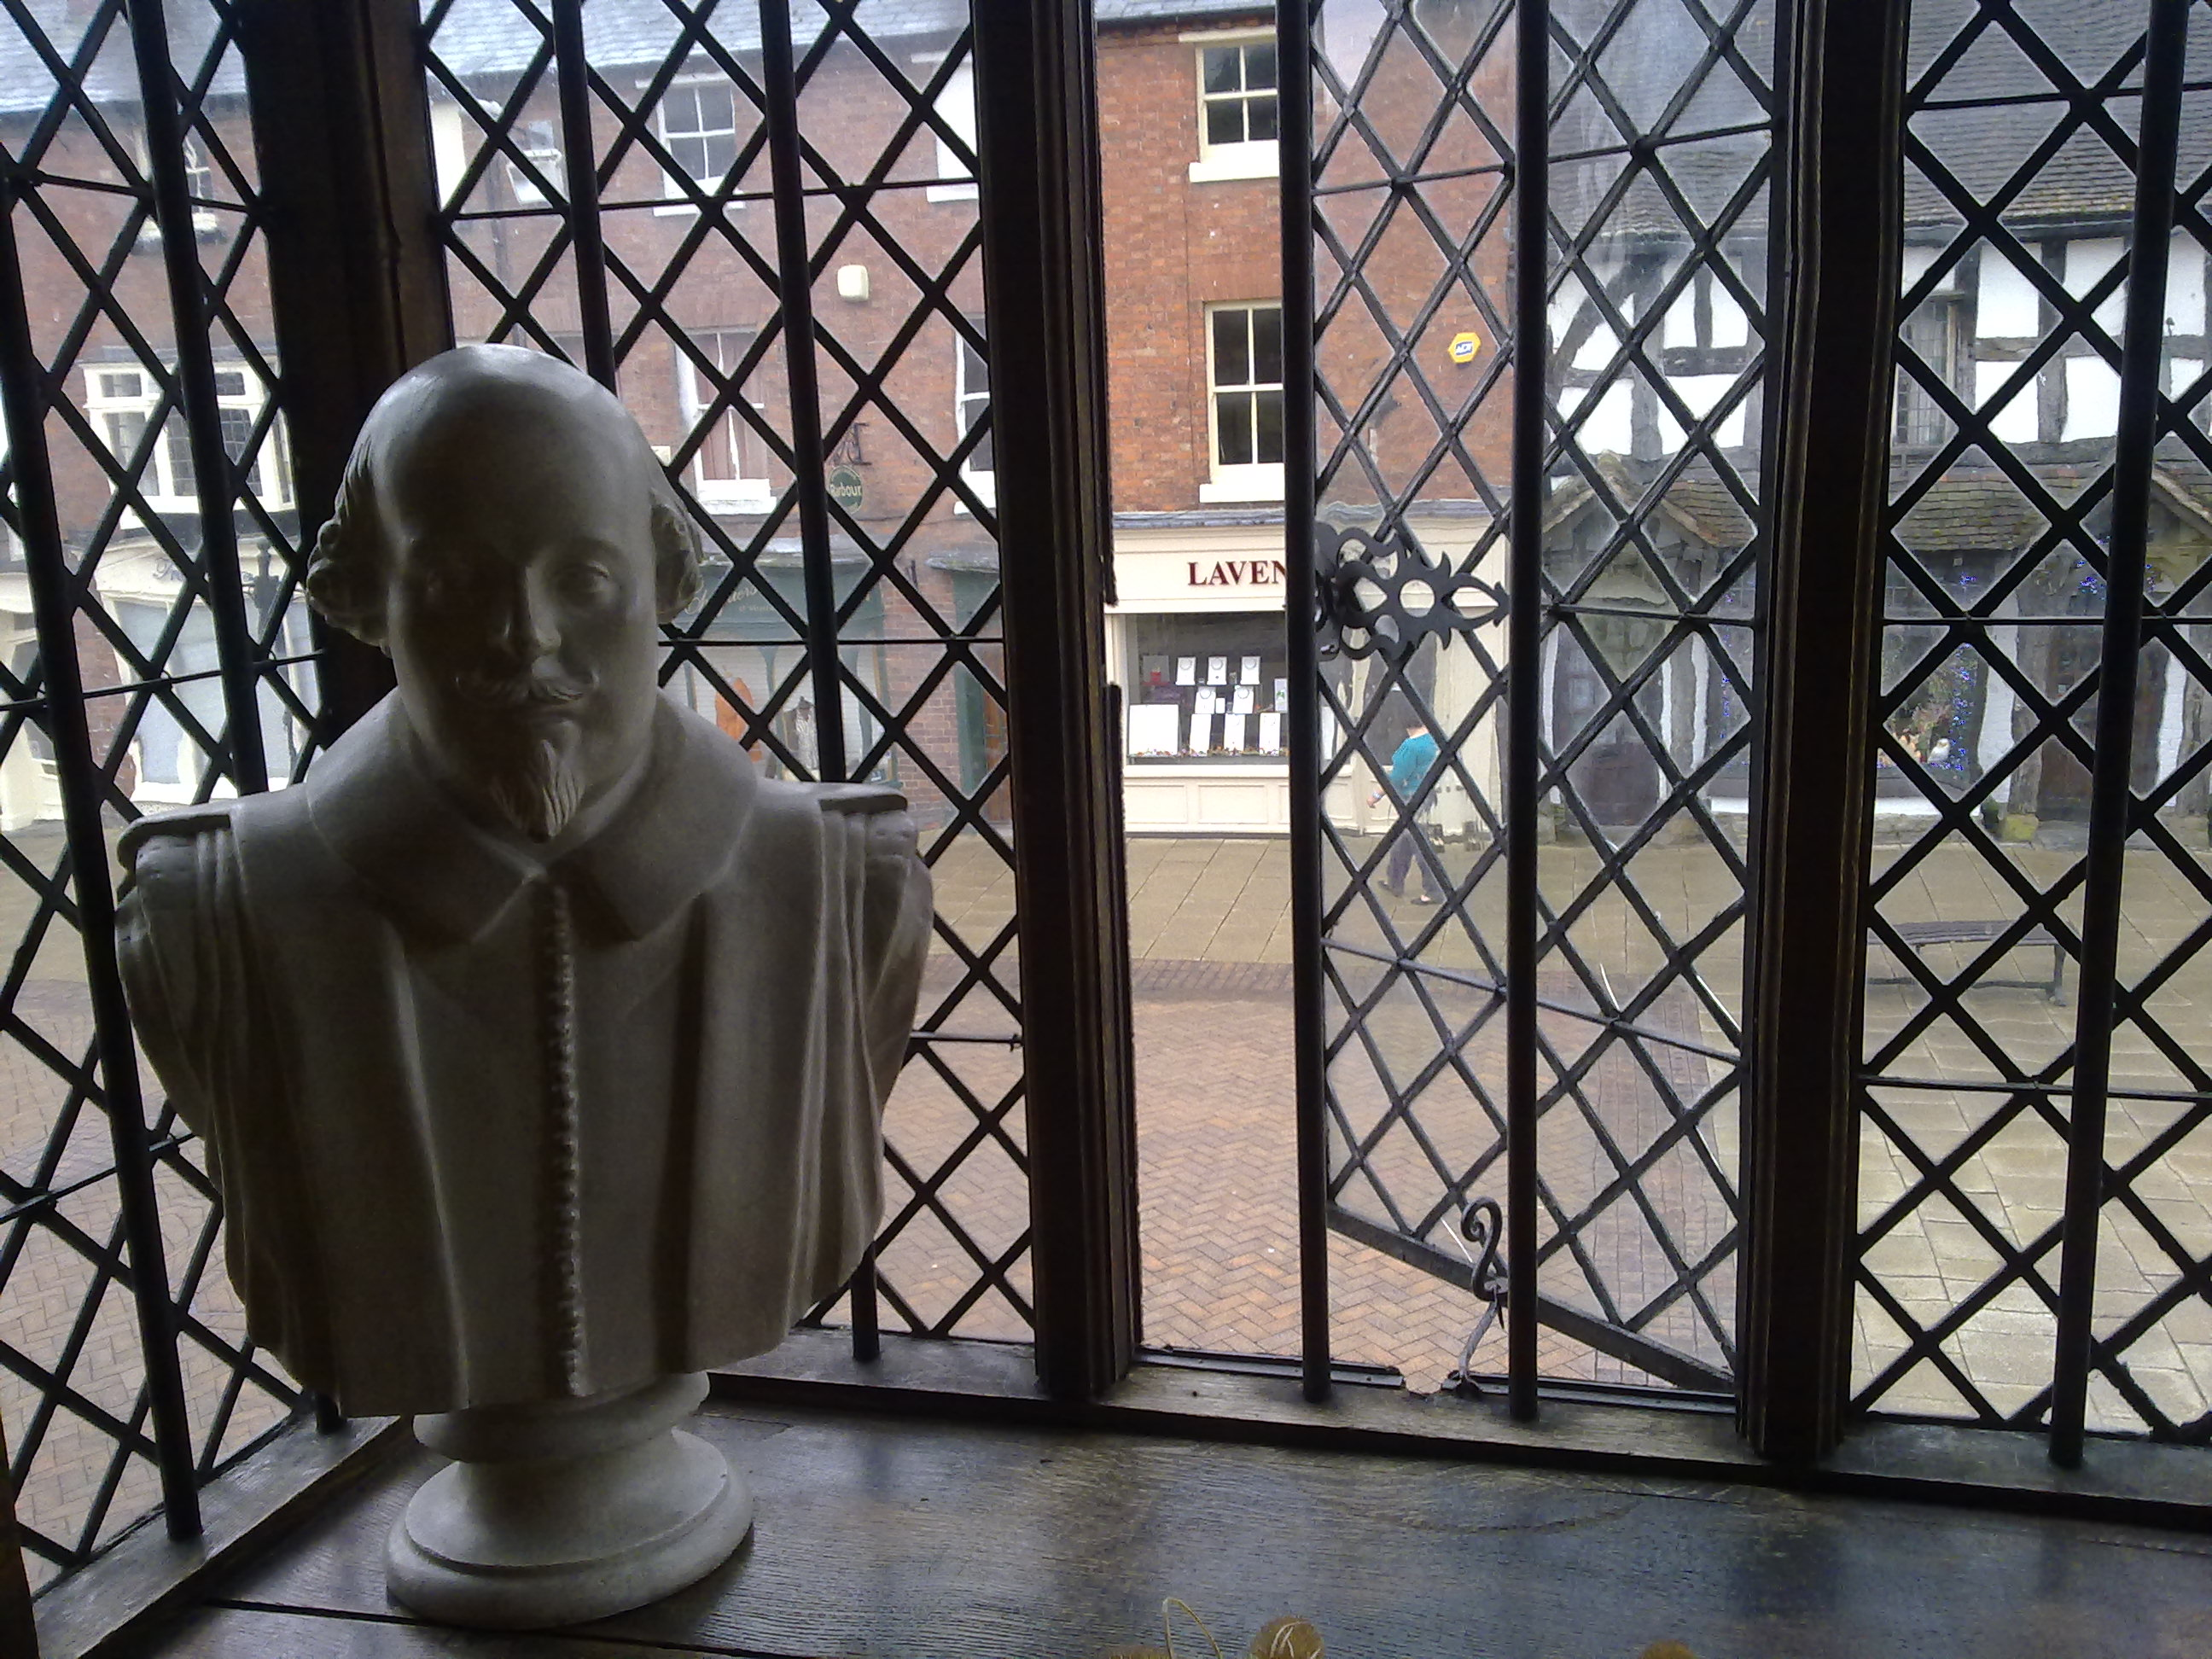 FileView From Shakespeares Birthplace Stratford Upon Avon